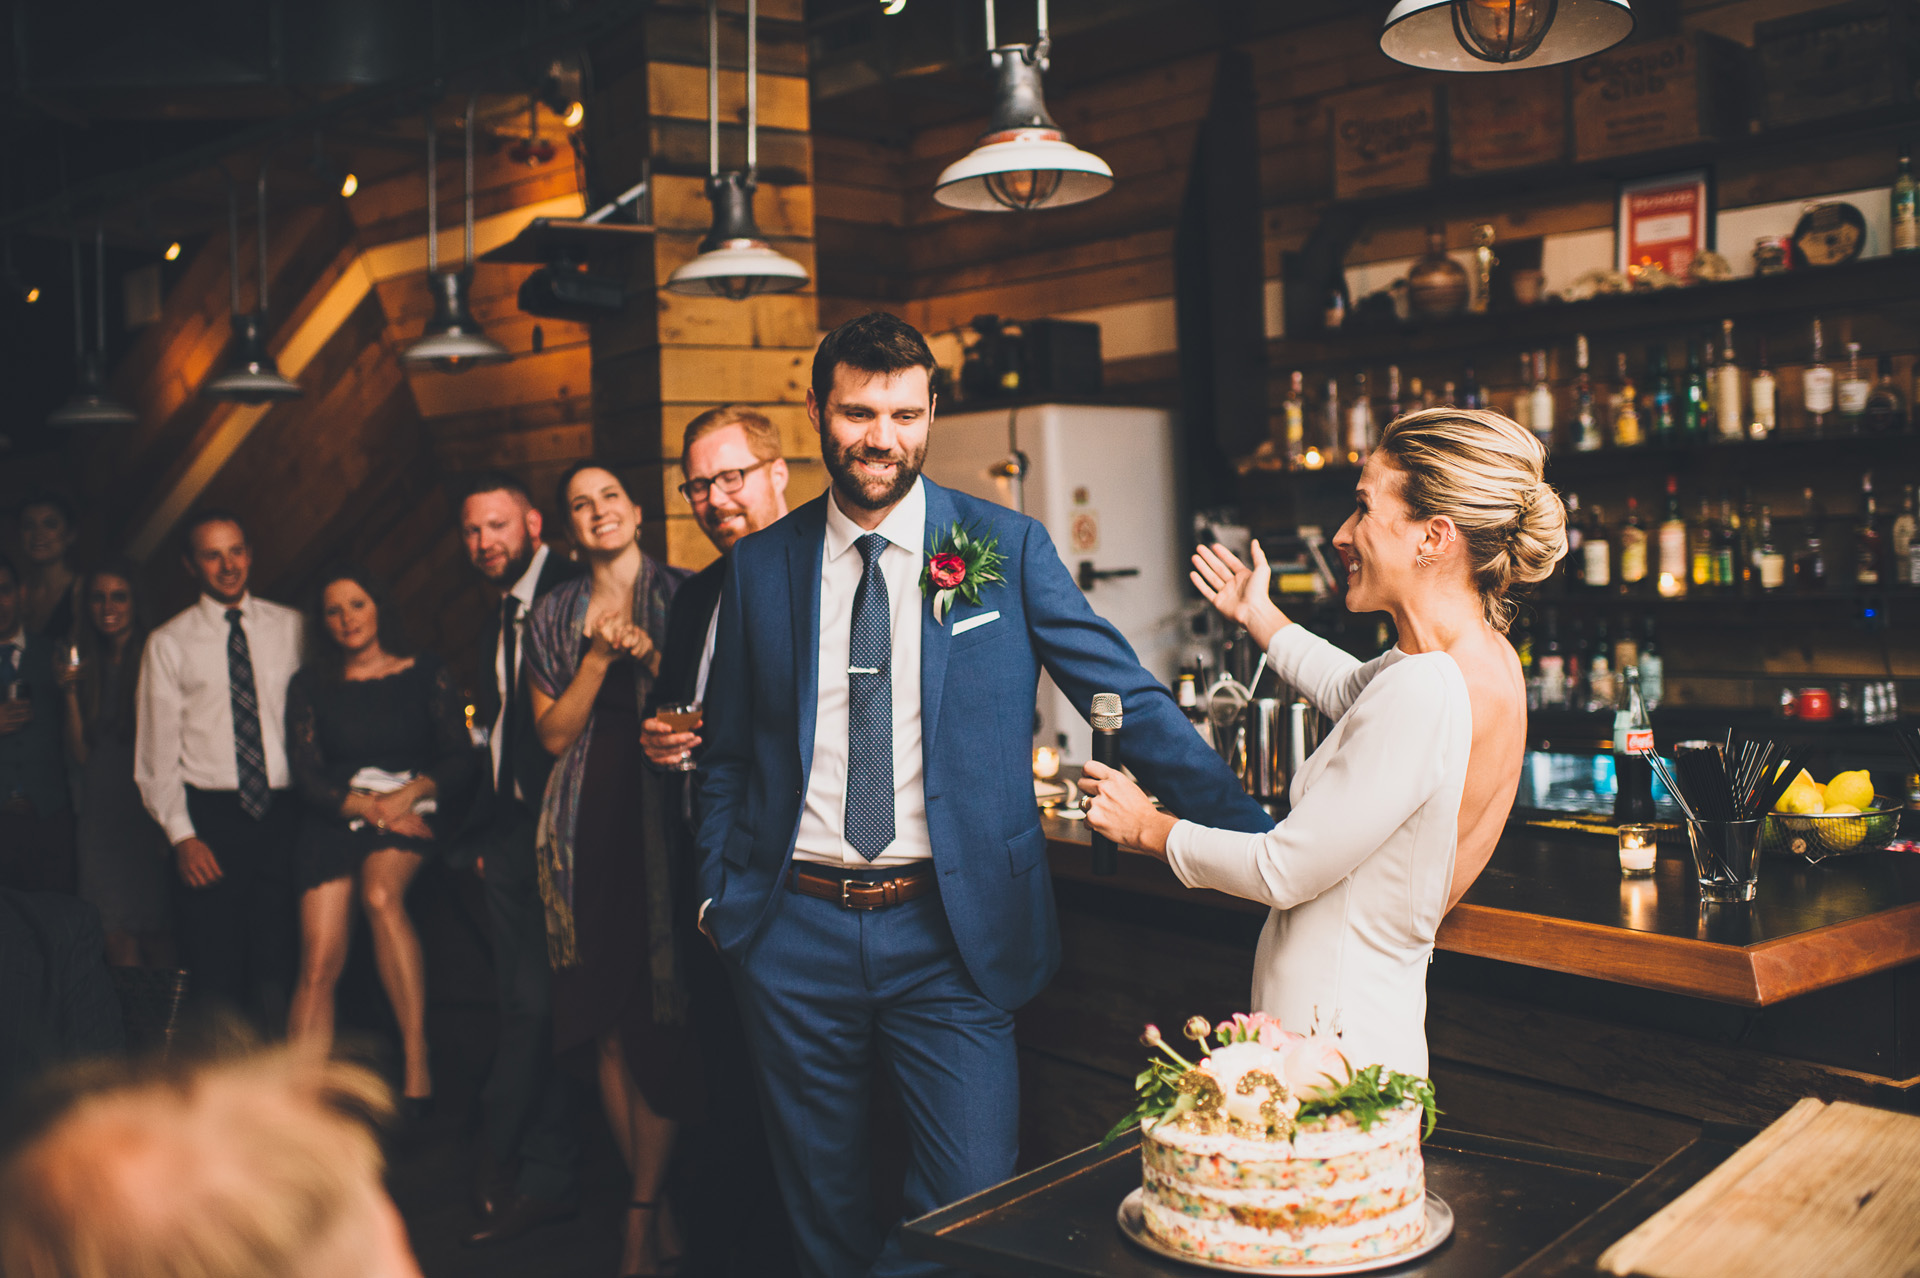 la-brasa-somerville-wedding-412